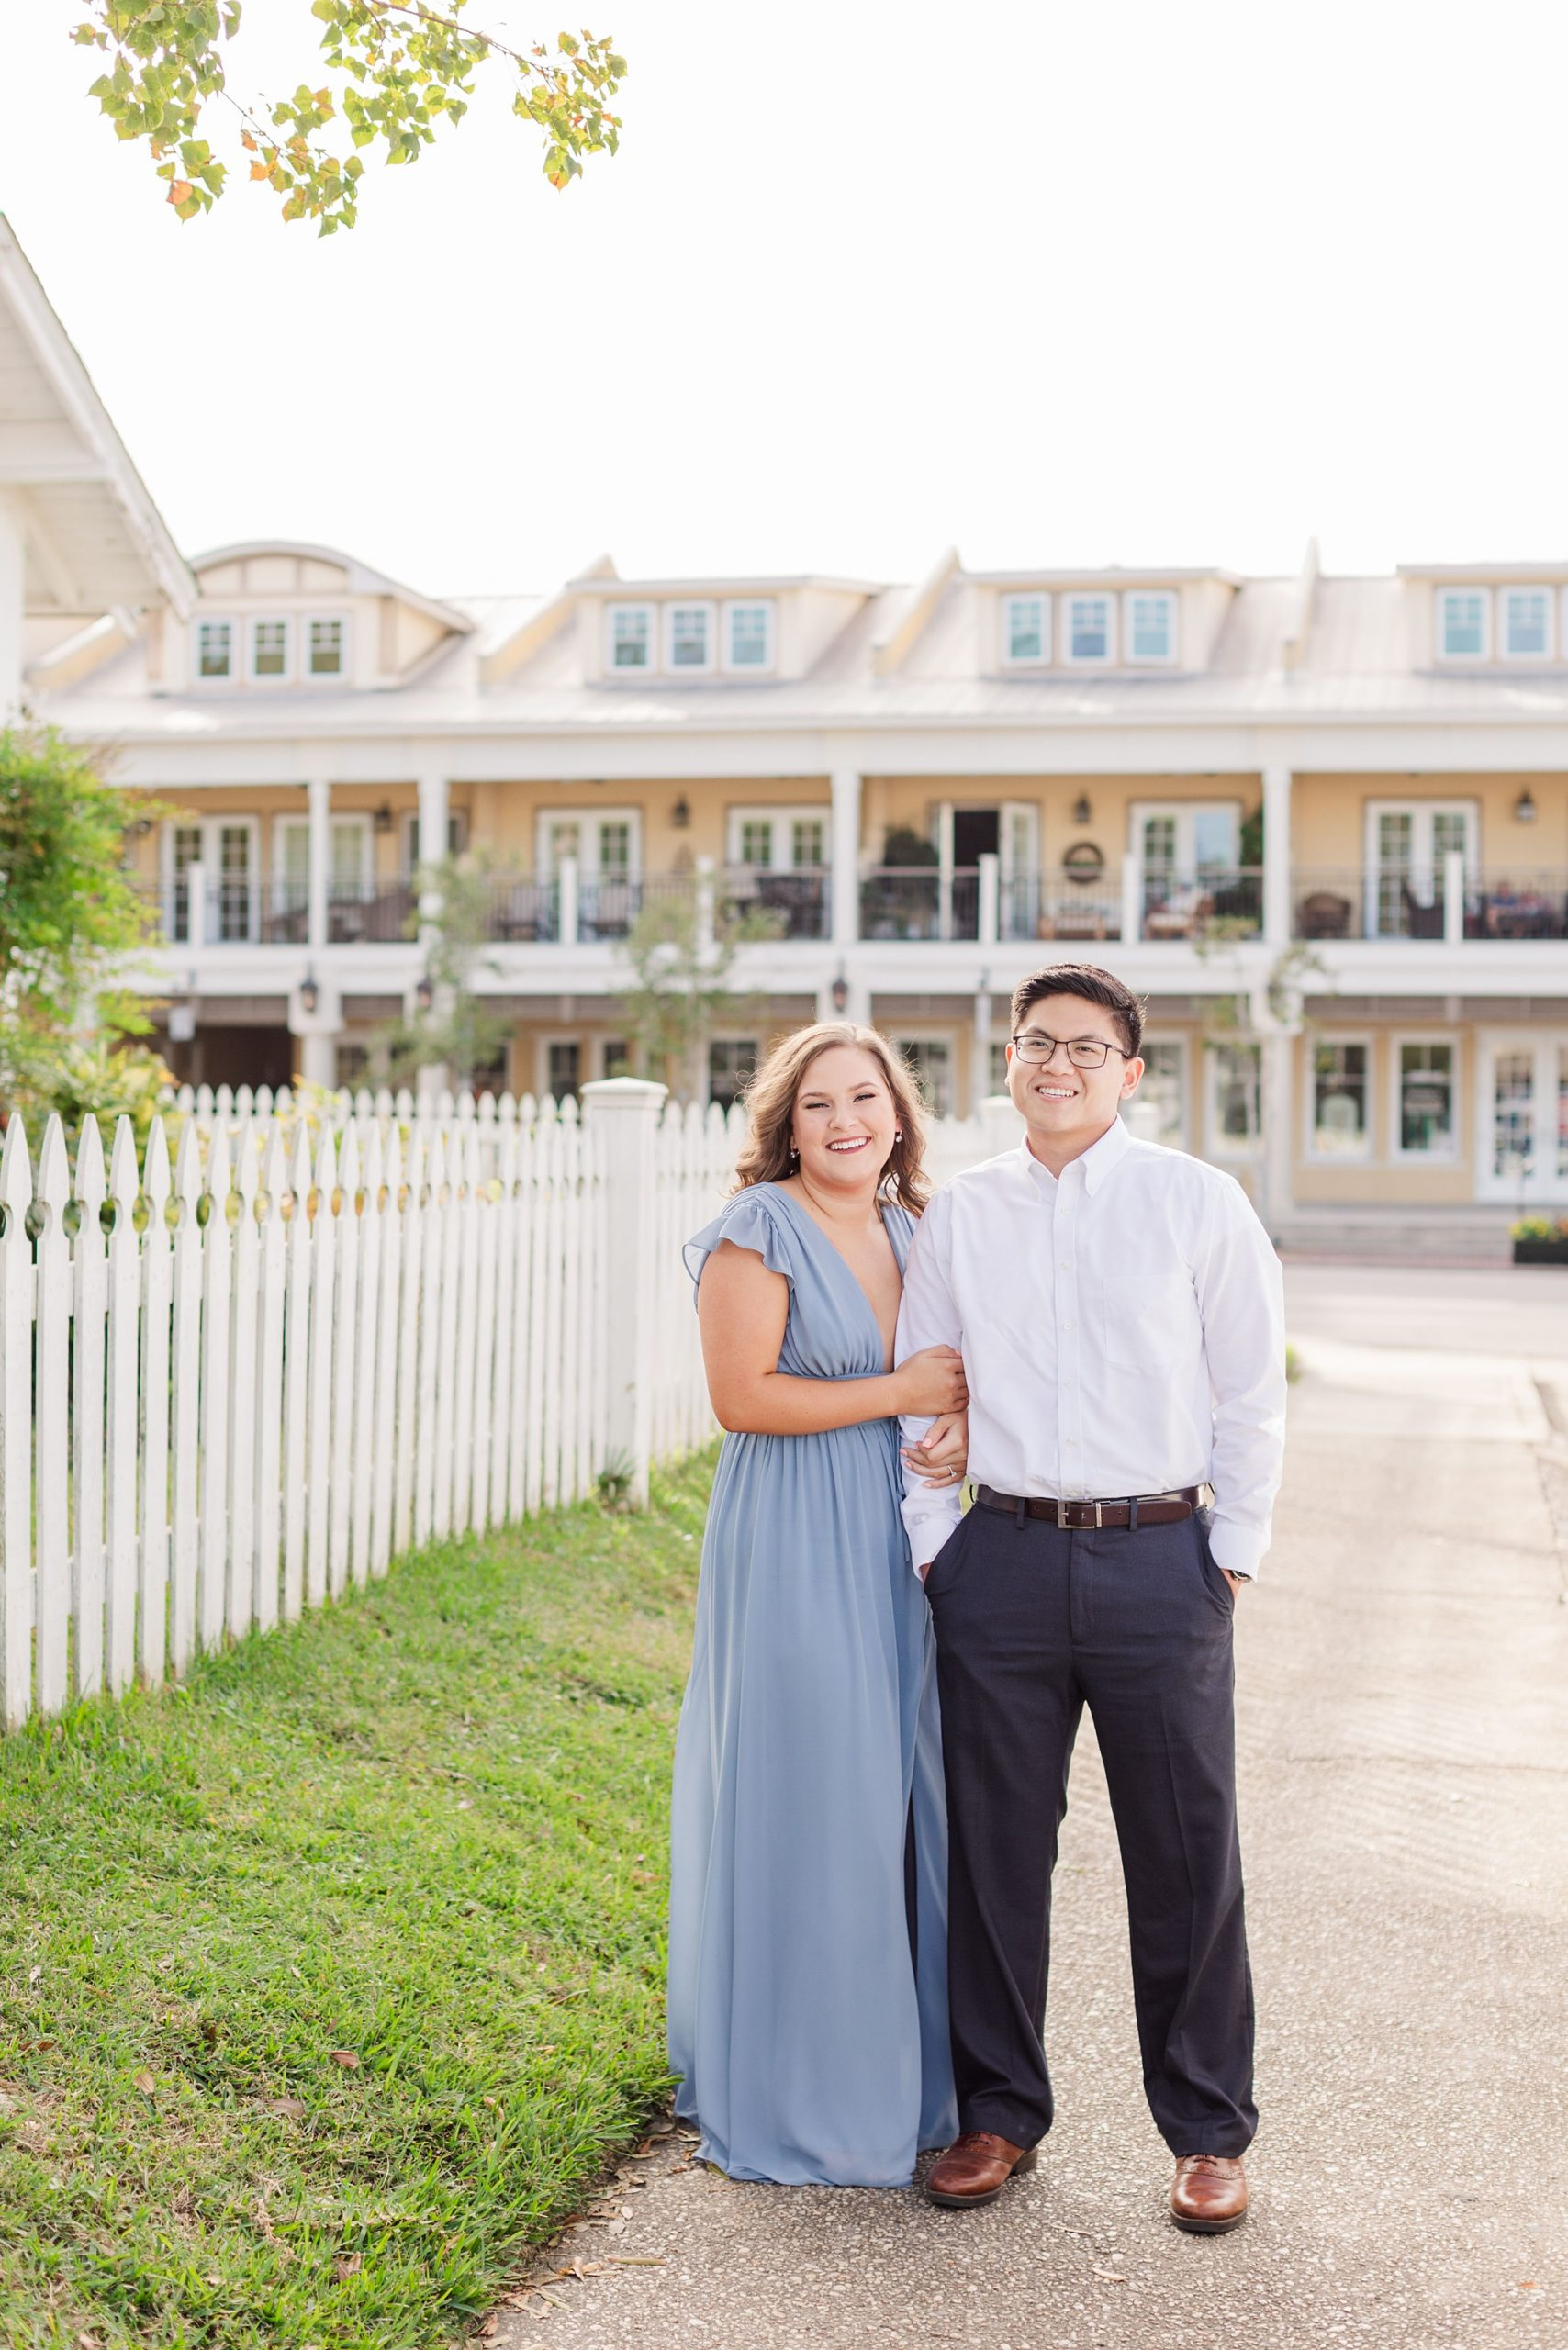 Alabama engagement portraits with Goodie and Smith in Downtown Fairhope